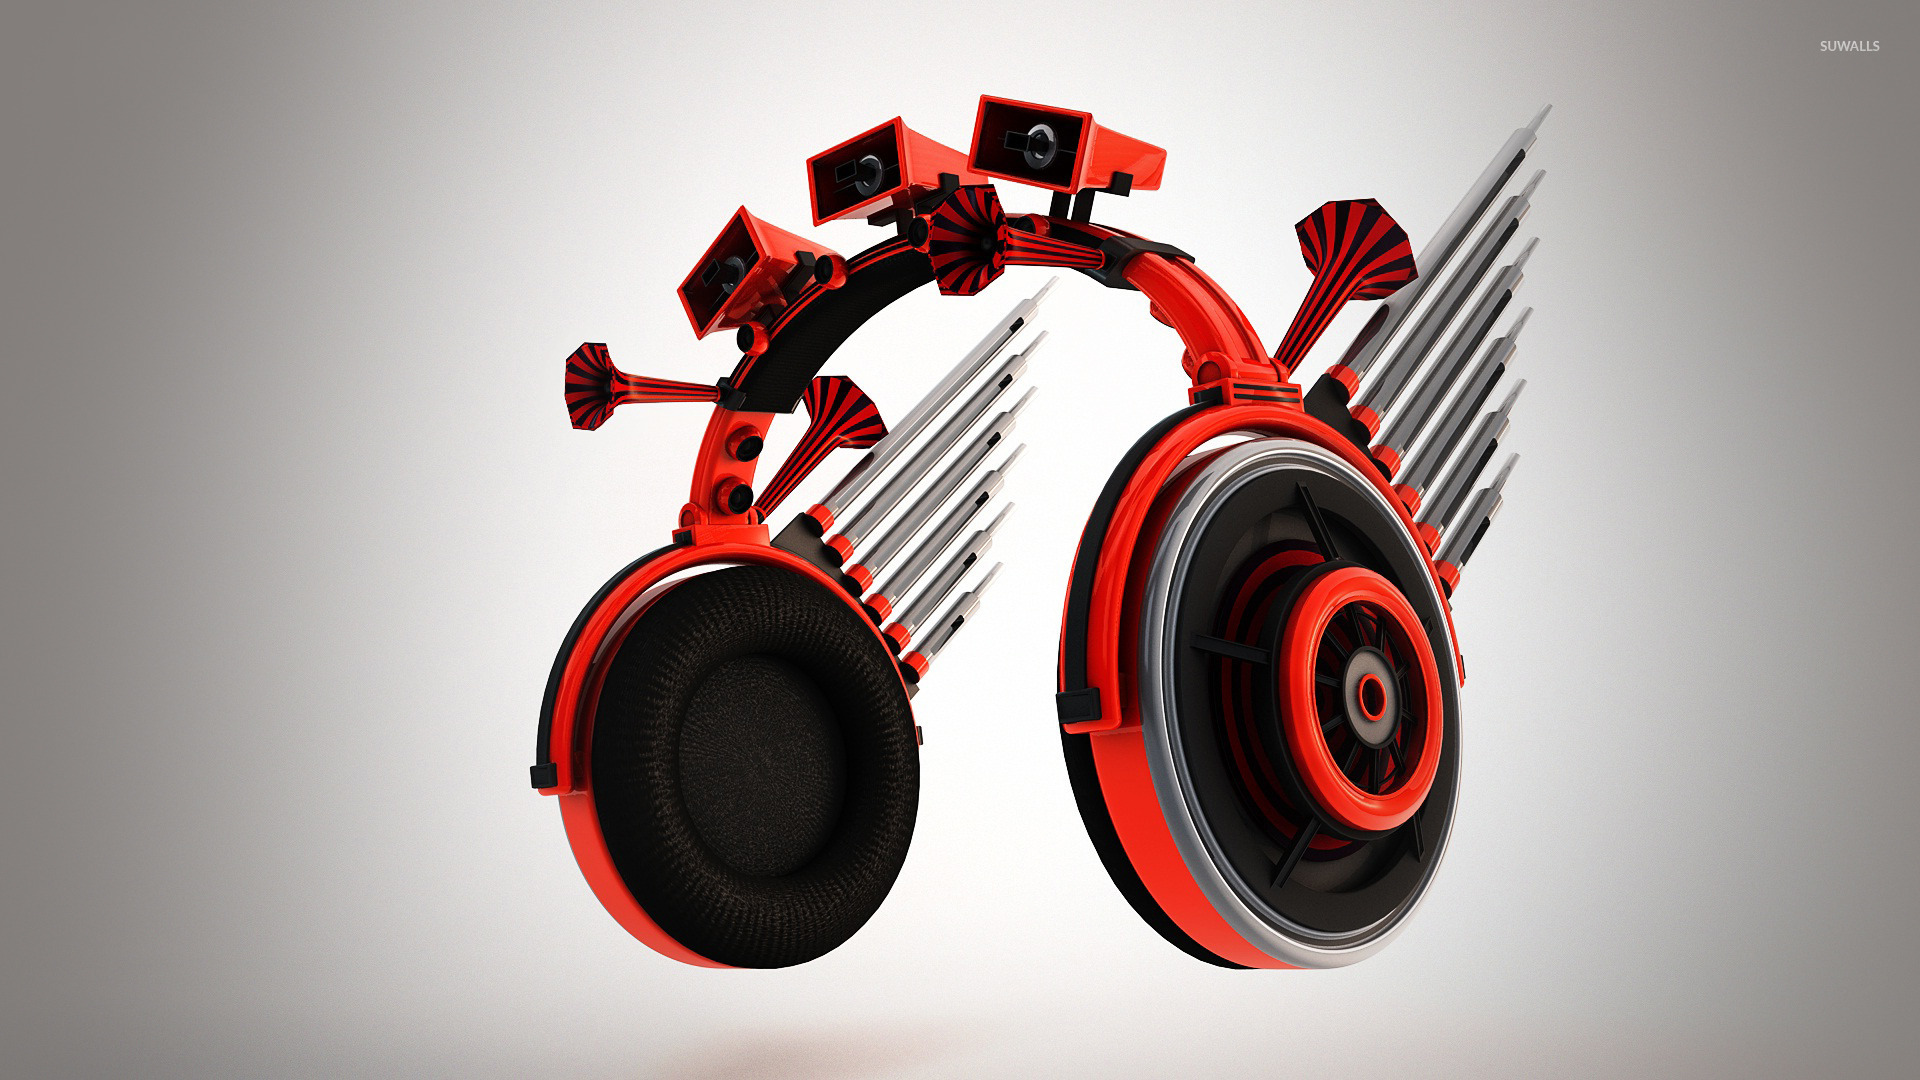 Headphone With Speakers Wallpaper Music Wallpapers 22697